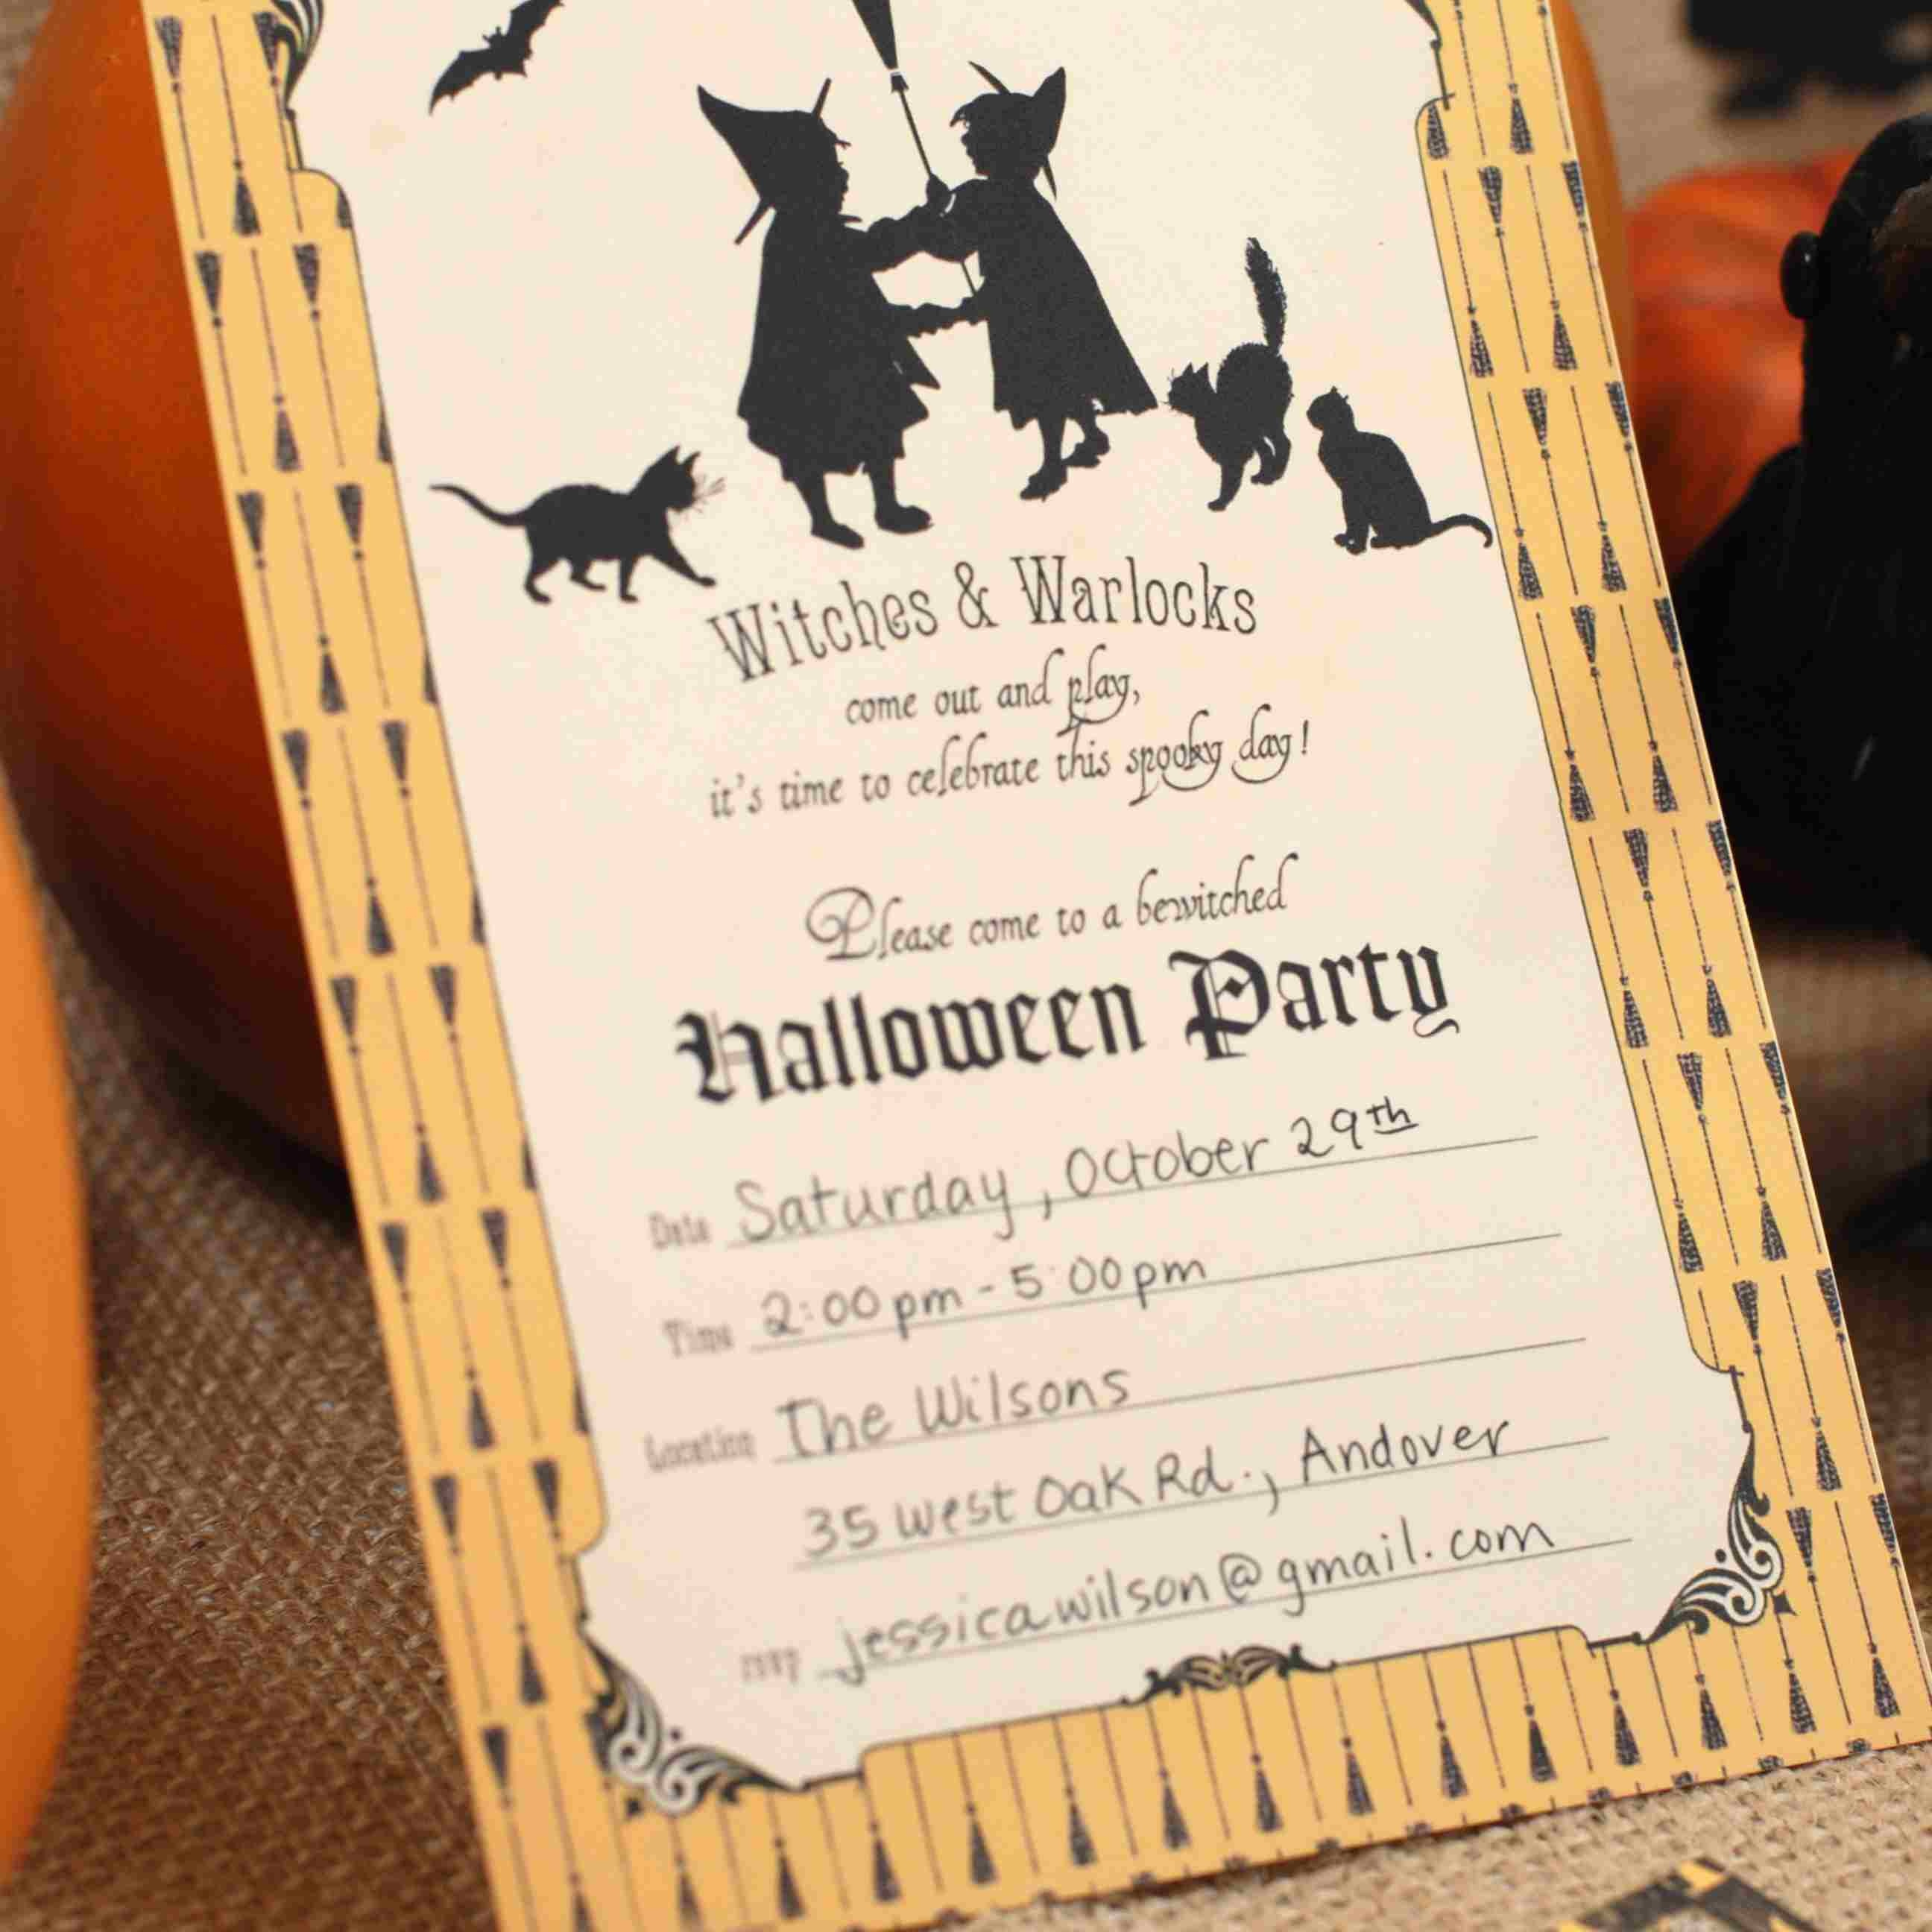 17 Free Halloween Invitations You Can Print From Home - Free Online Halloween Invitations Printable